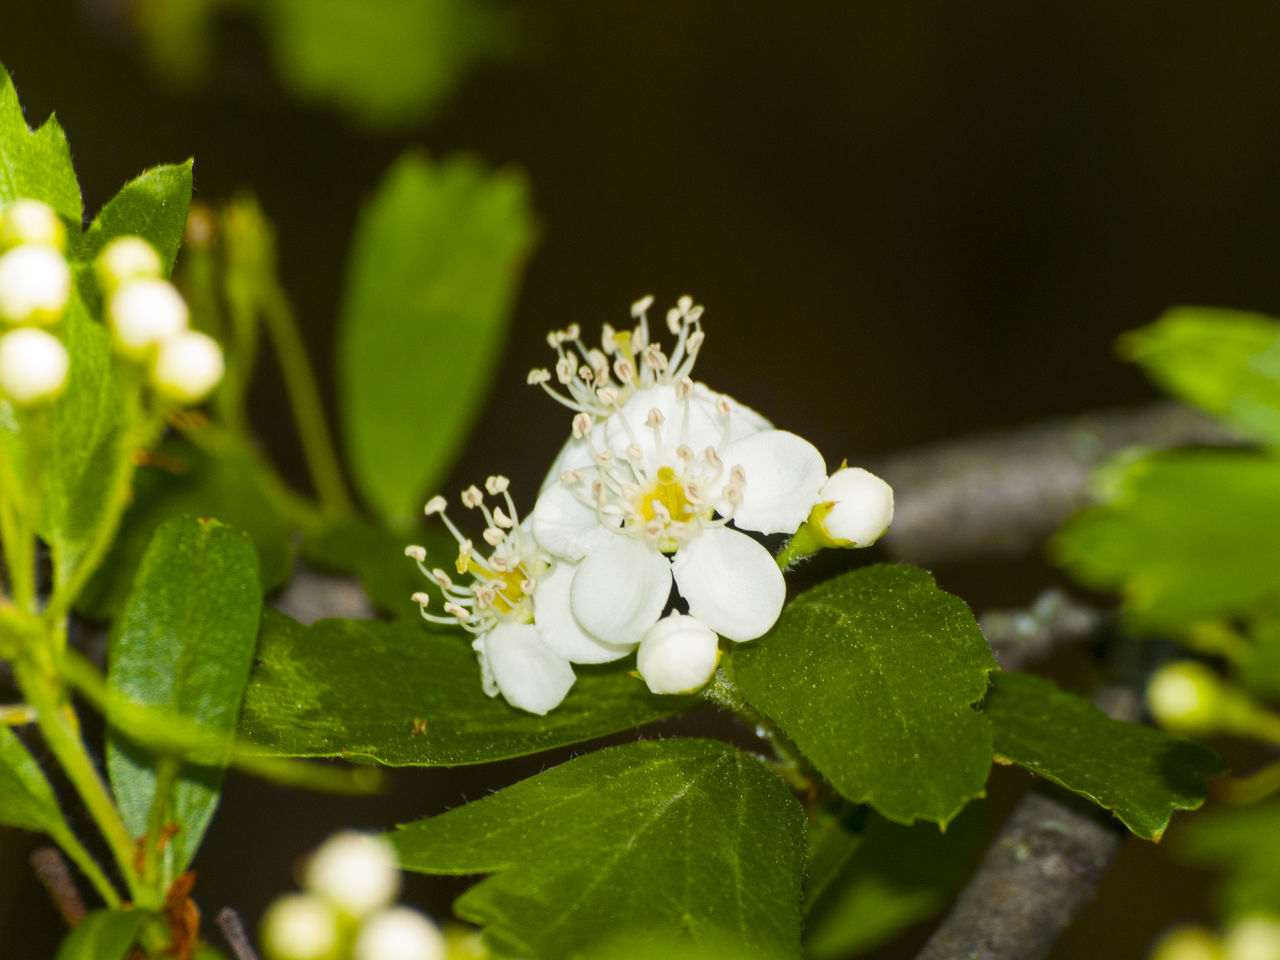 Animal Themes Animals In The Wild Beauty In Nature Blooming Bush Close-up Crataegus Crataegus Monogyna Day Flower Flower Head Fragility Freshness Green Color Growth Hawthorn Nature No People One Animal Outdoors Petal Plant Springtime White Color Whitethorn